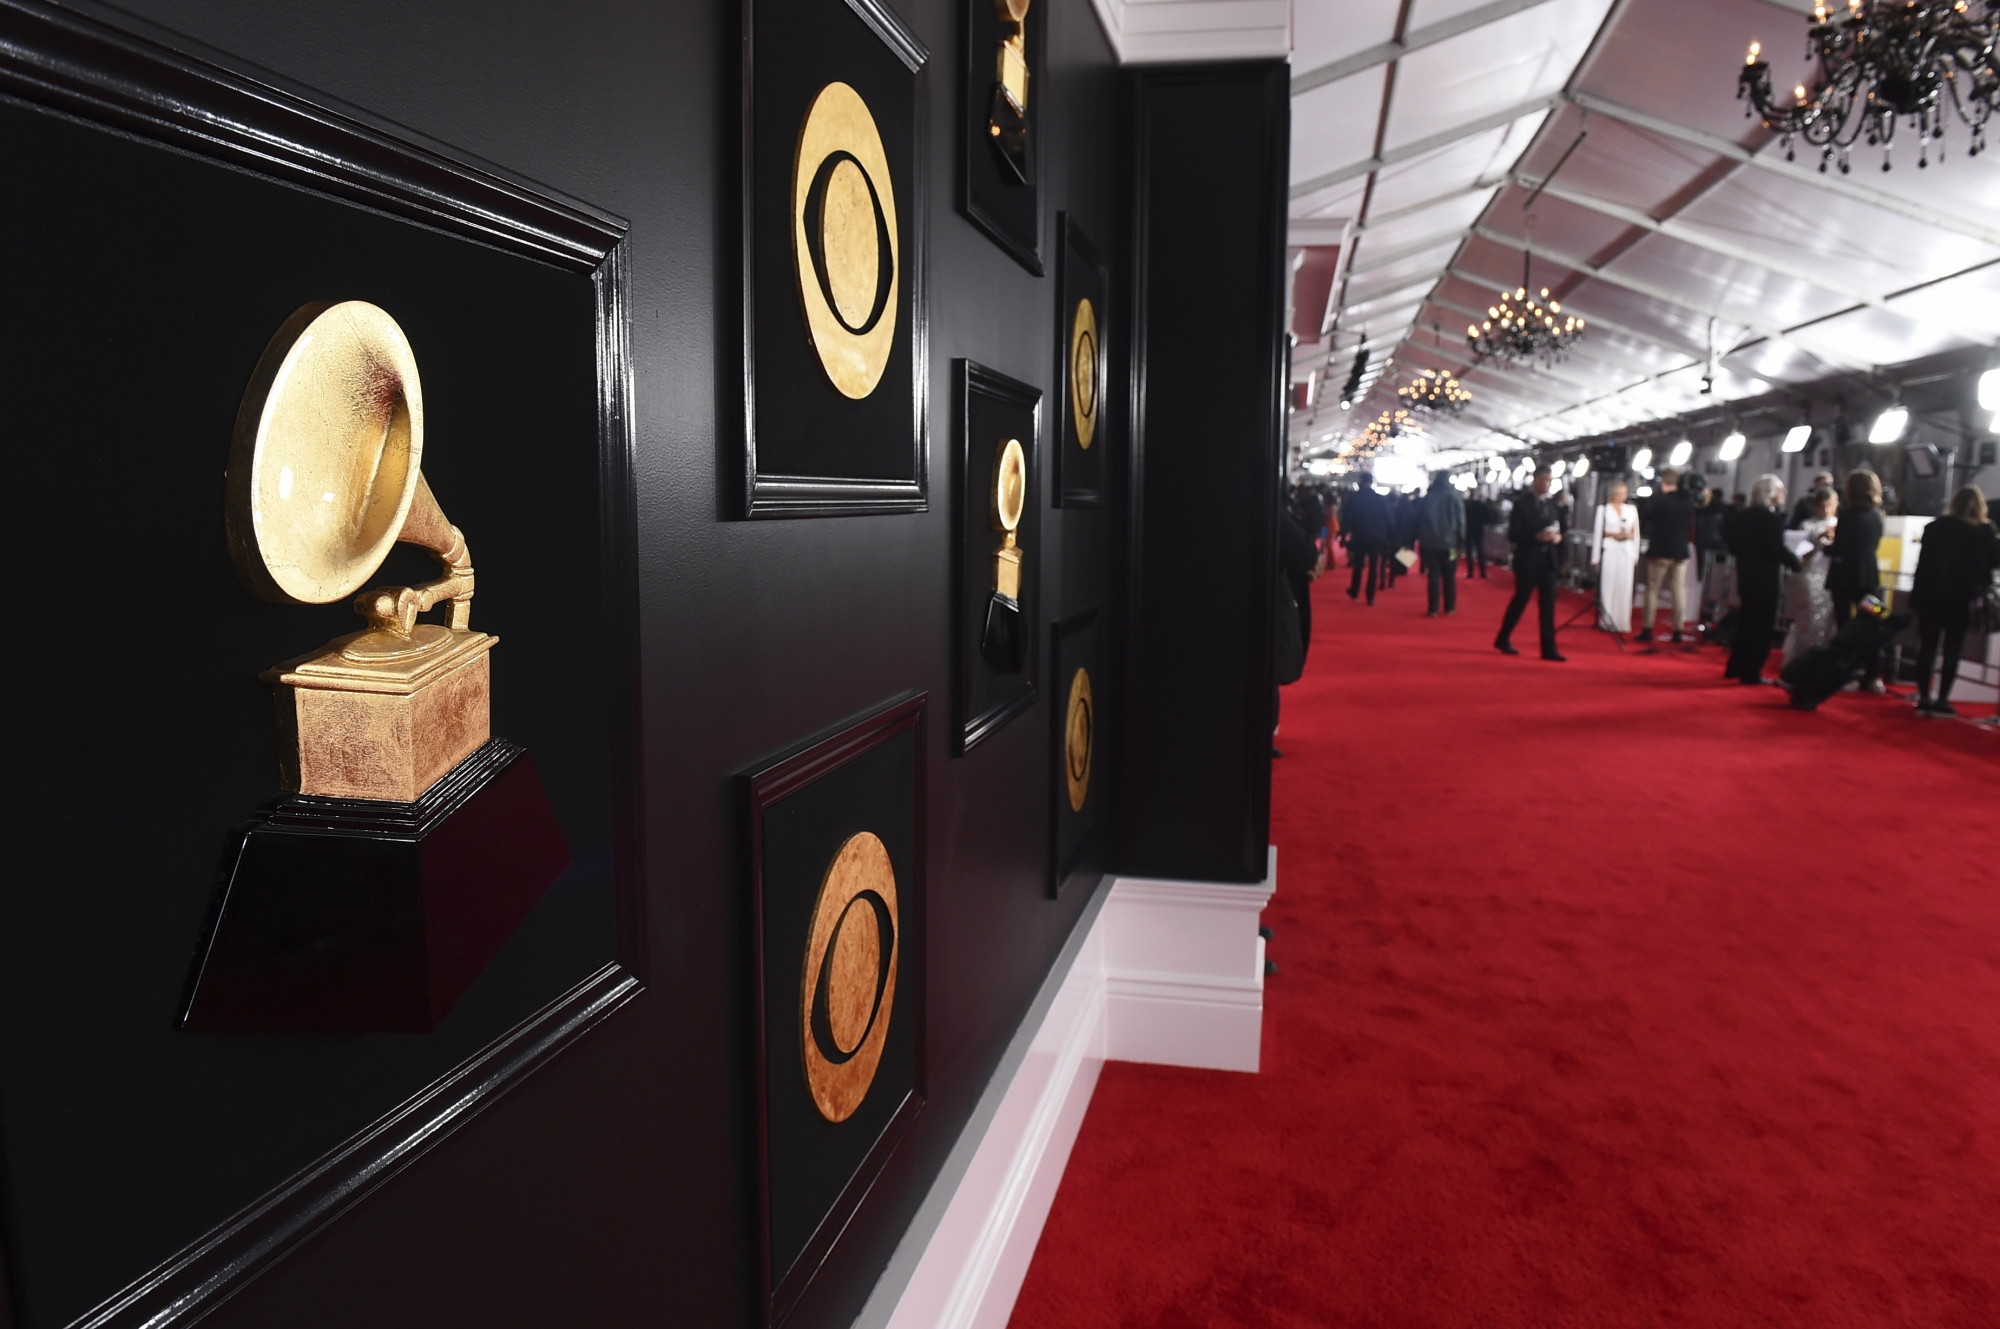 2019 61st Grammy Awards: The Latest: Collaborators: No Word From Glover On Grammys